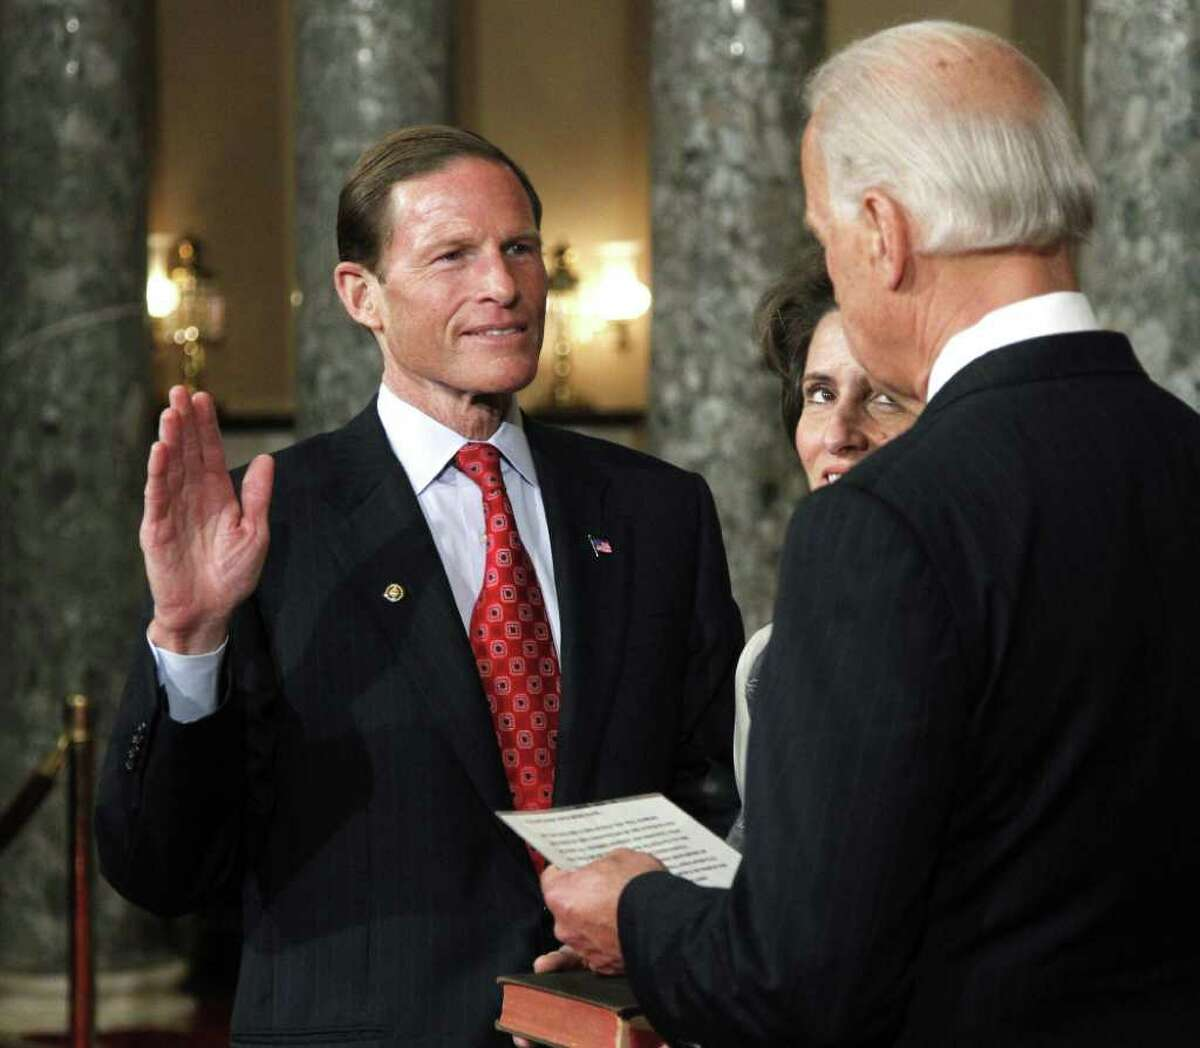 Vice President Joe Biden administers a ceremonial Senate oath during a mock swearing-in ceremony to Sen. Richard Blumenthal, D-Conn., left, accompanied by his wife Cynthia, Wednesday, Jan. 5, 2011, in the Old Senate Chamber on Capitol Hill in Washington. (AP Photo/Manuel Balce Ceneta)